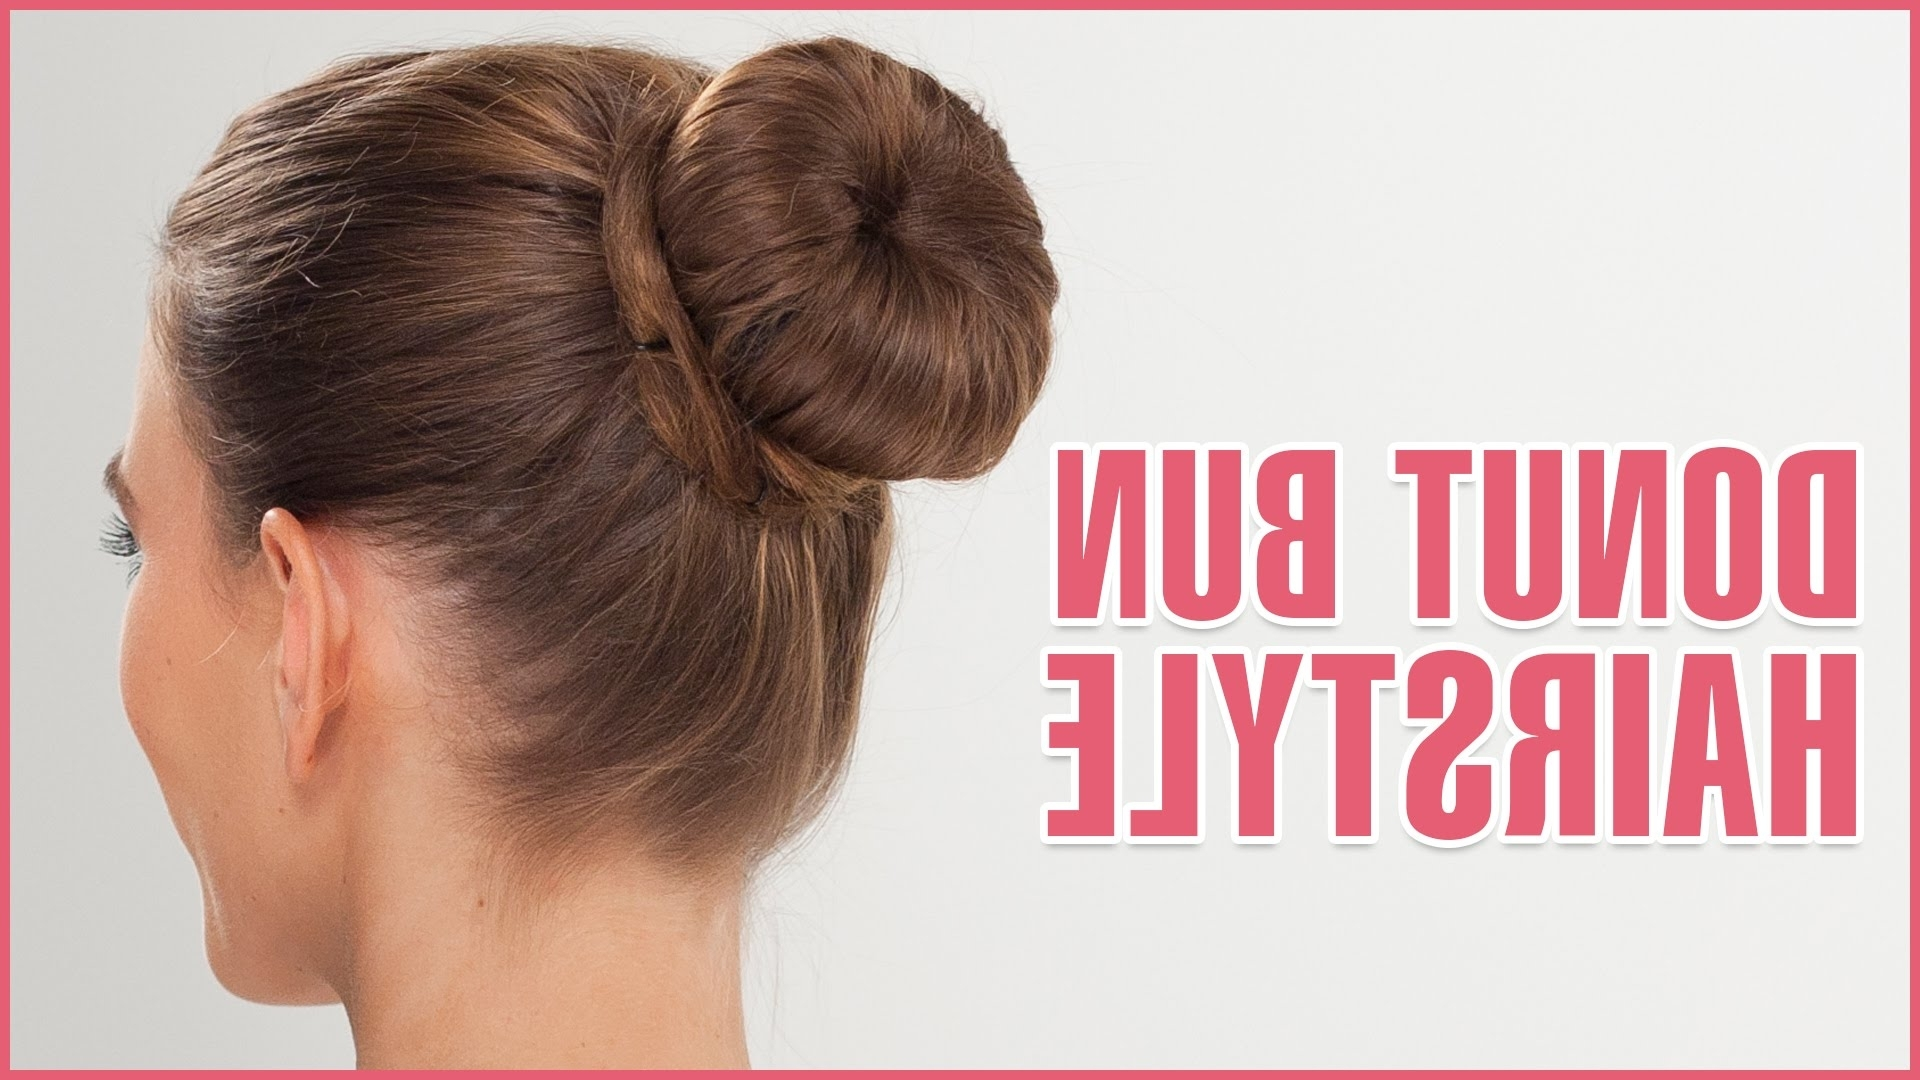 How To Do Donut Bun Hairstyle Using Hair Donut – Youtube Within Recent Donut Bun Hairstyles With Braid Around (View 10 of 15)